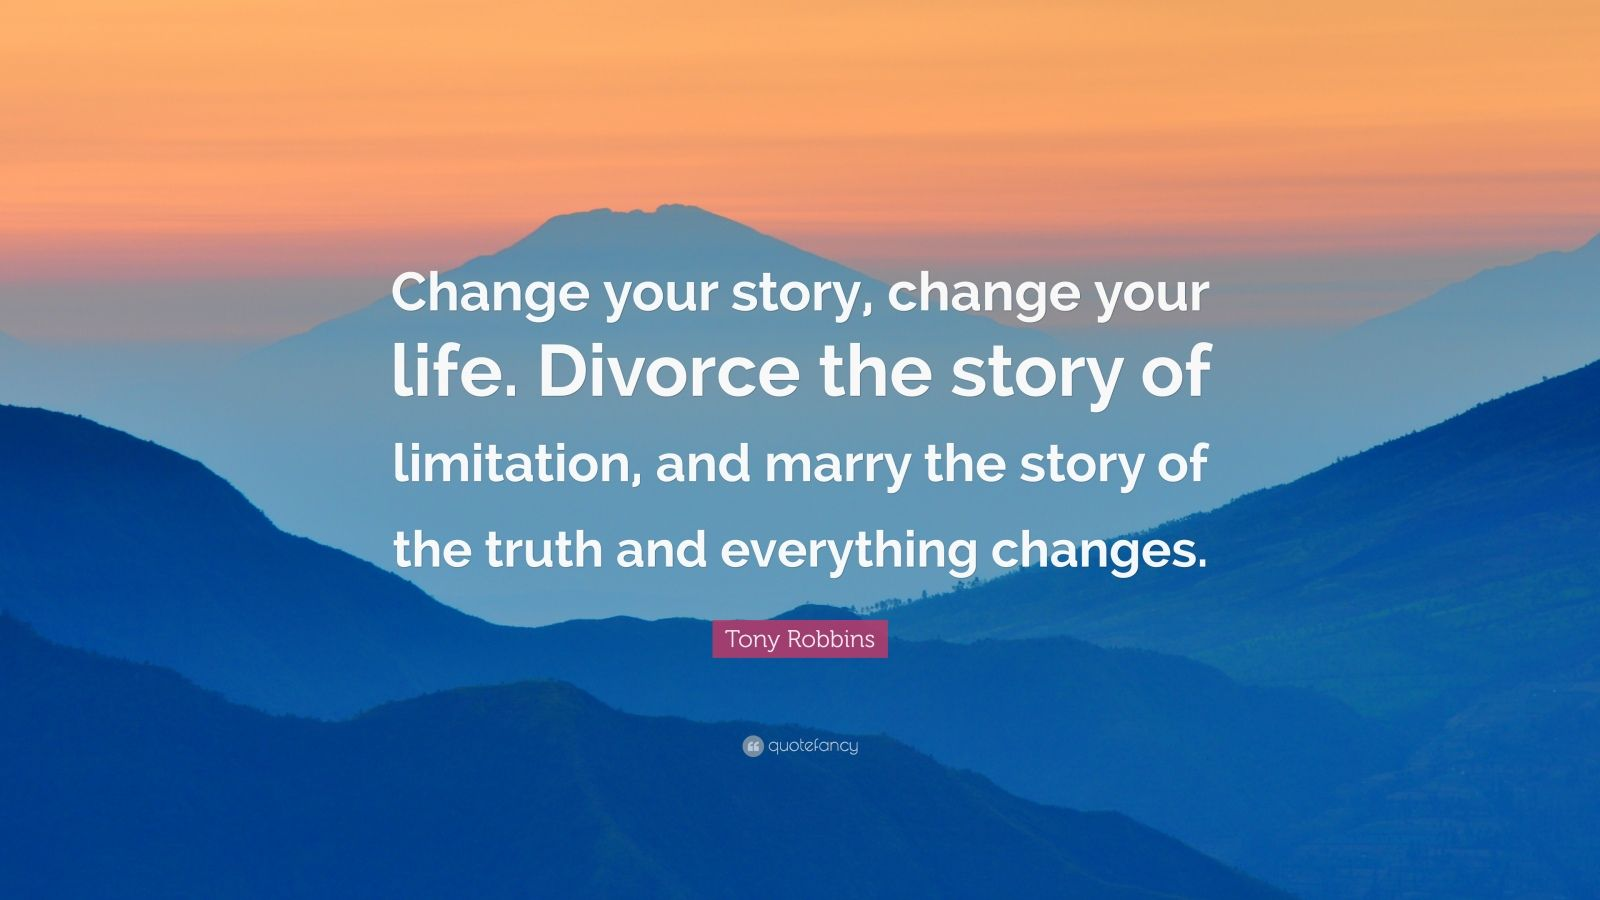 """Tony Robbins Quote: """"Change your story, change your life. Divorce the story of limitation, and marry the story of the truth and everything changes."""""""